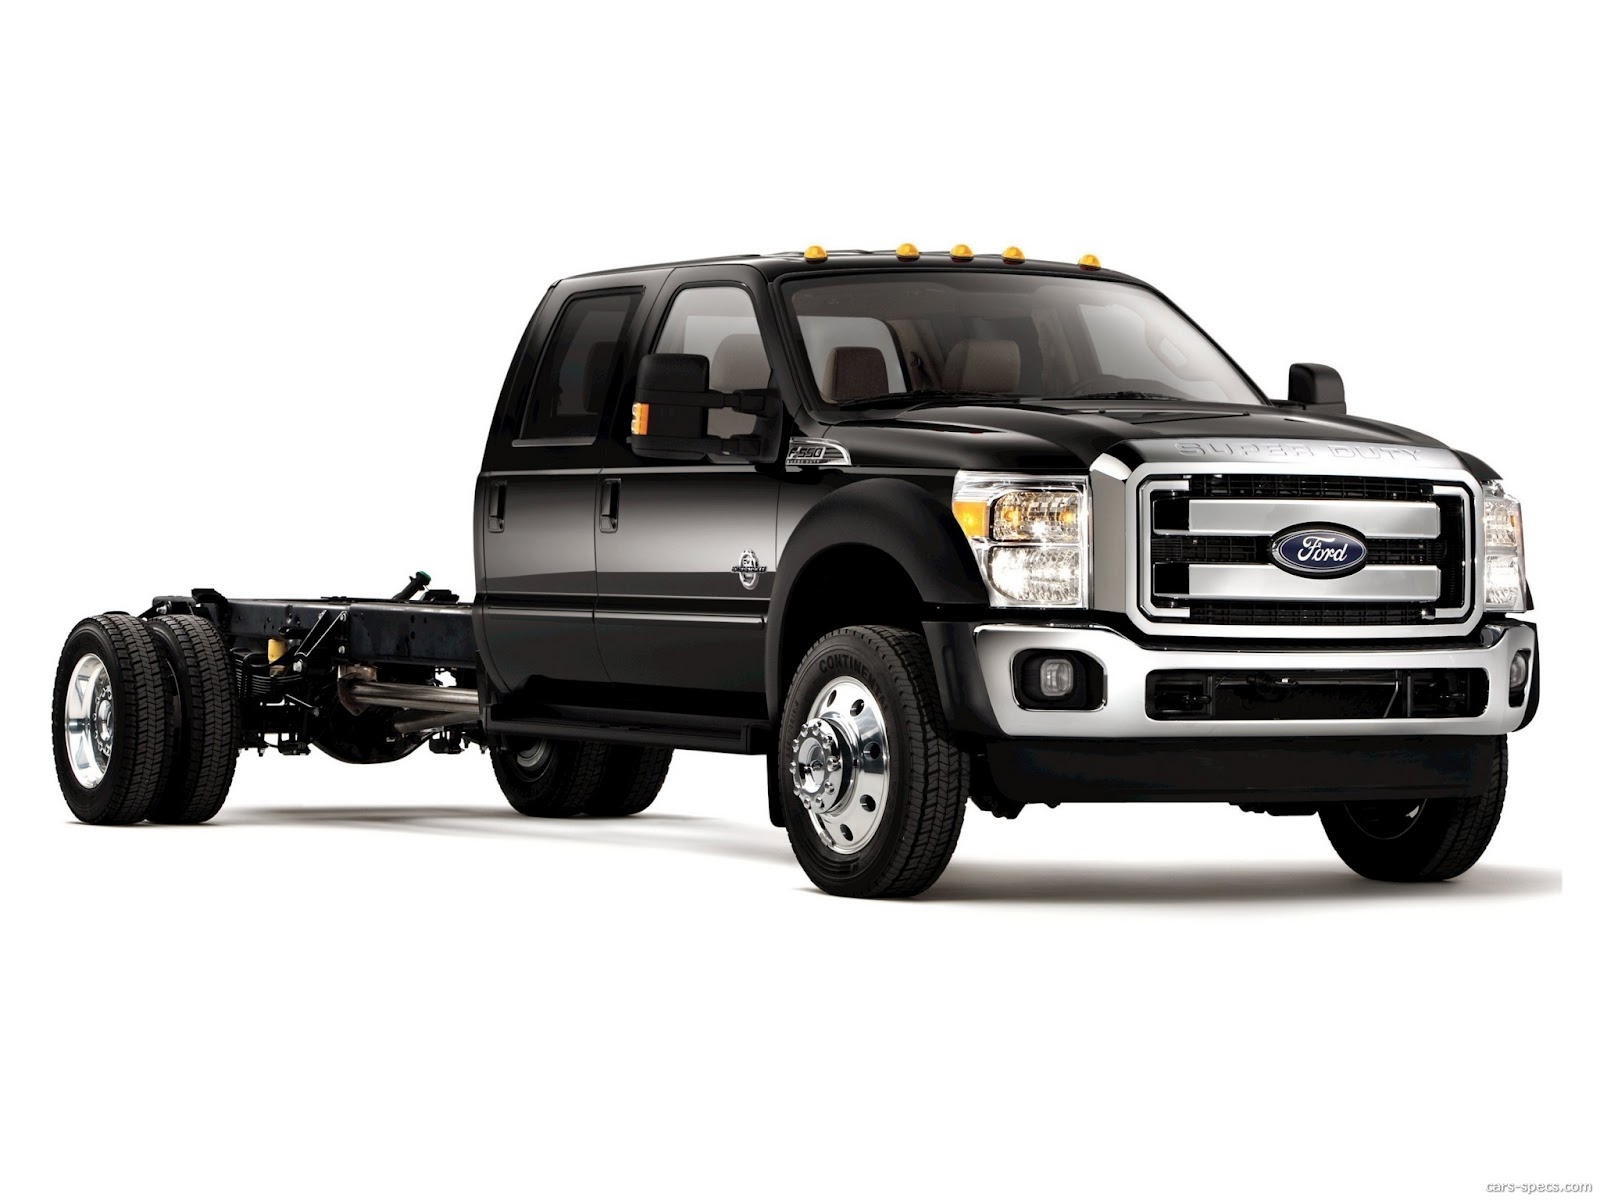 Ford Ranger Bed Dimensions >> 2009 Ford F-250 Super Duty Crew Cab Specifications, Pictures, Prices